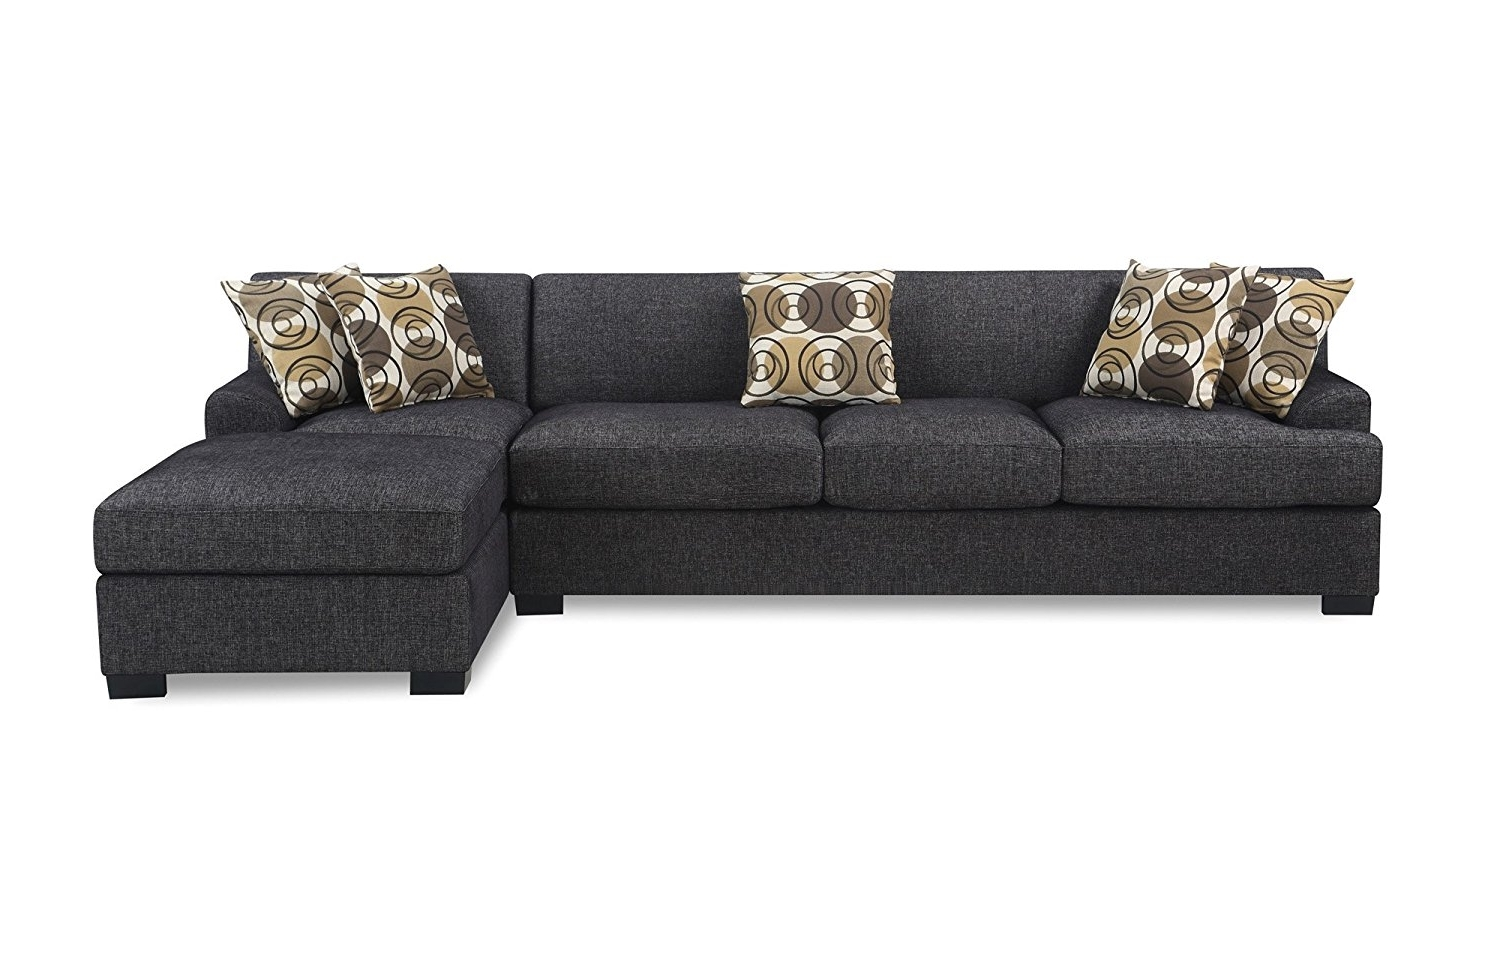 Amazon: Bobkona Poundex Benford Collection Faux Linen Chaise With Favorite Chaise Sofa Sectionals (View 7 of 15)